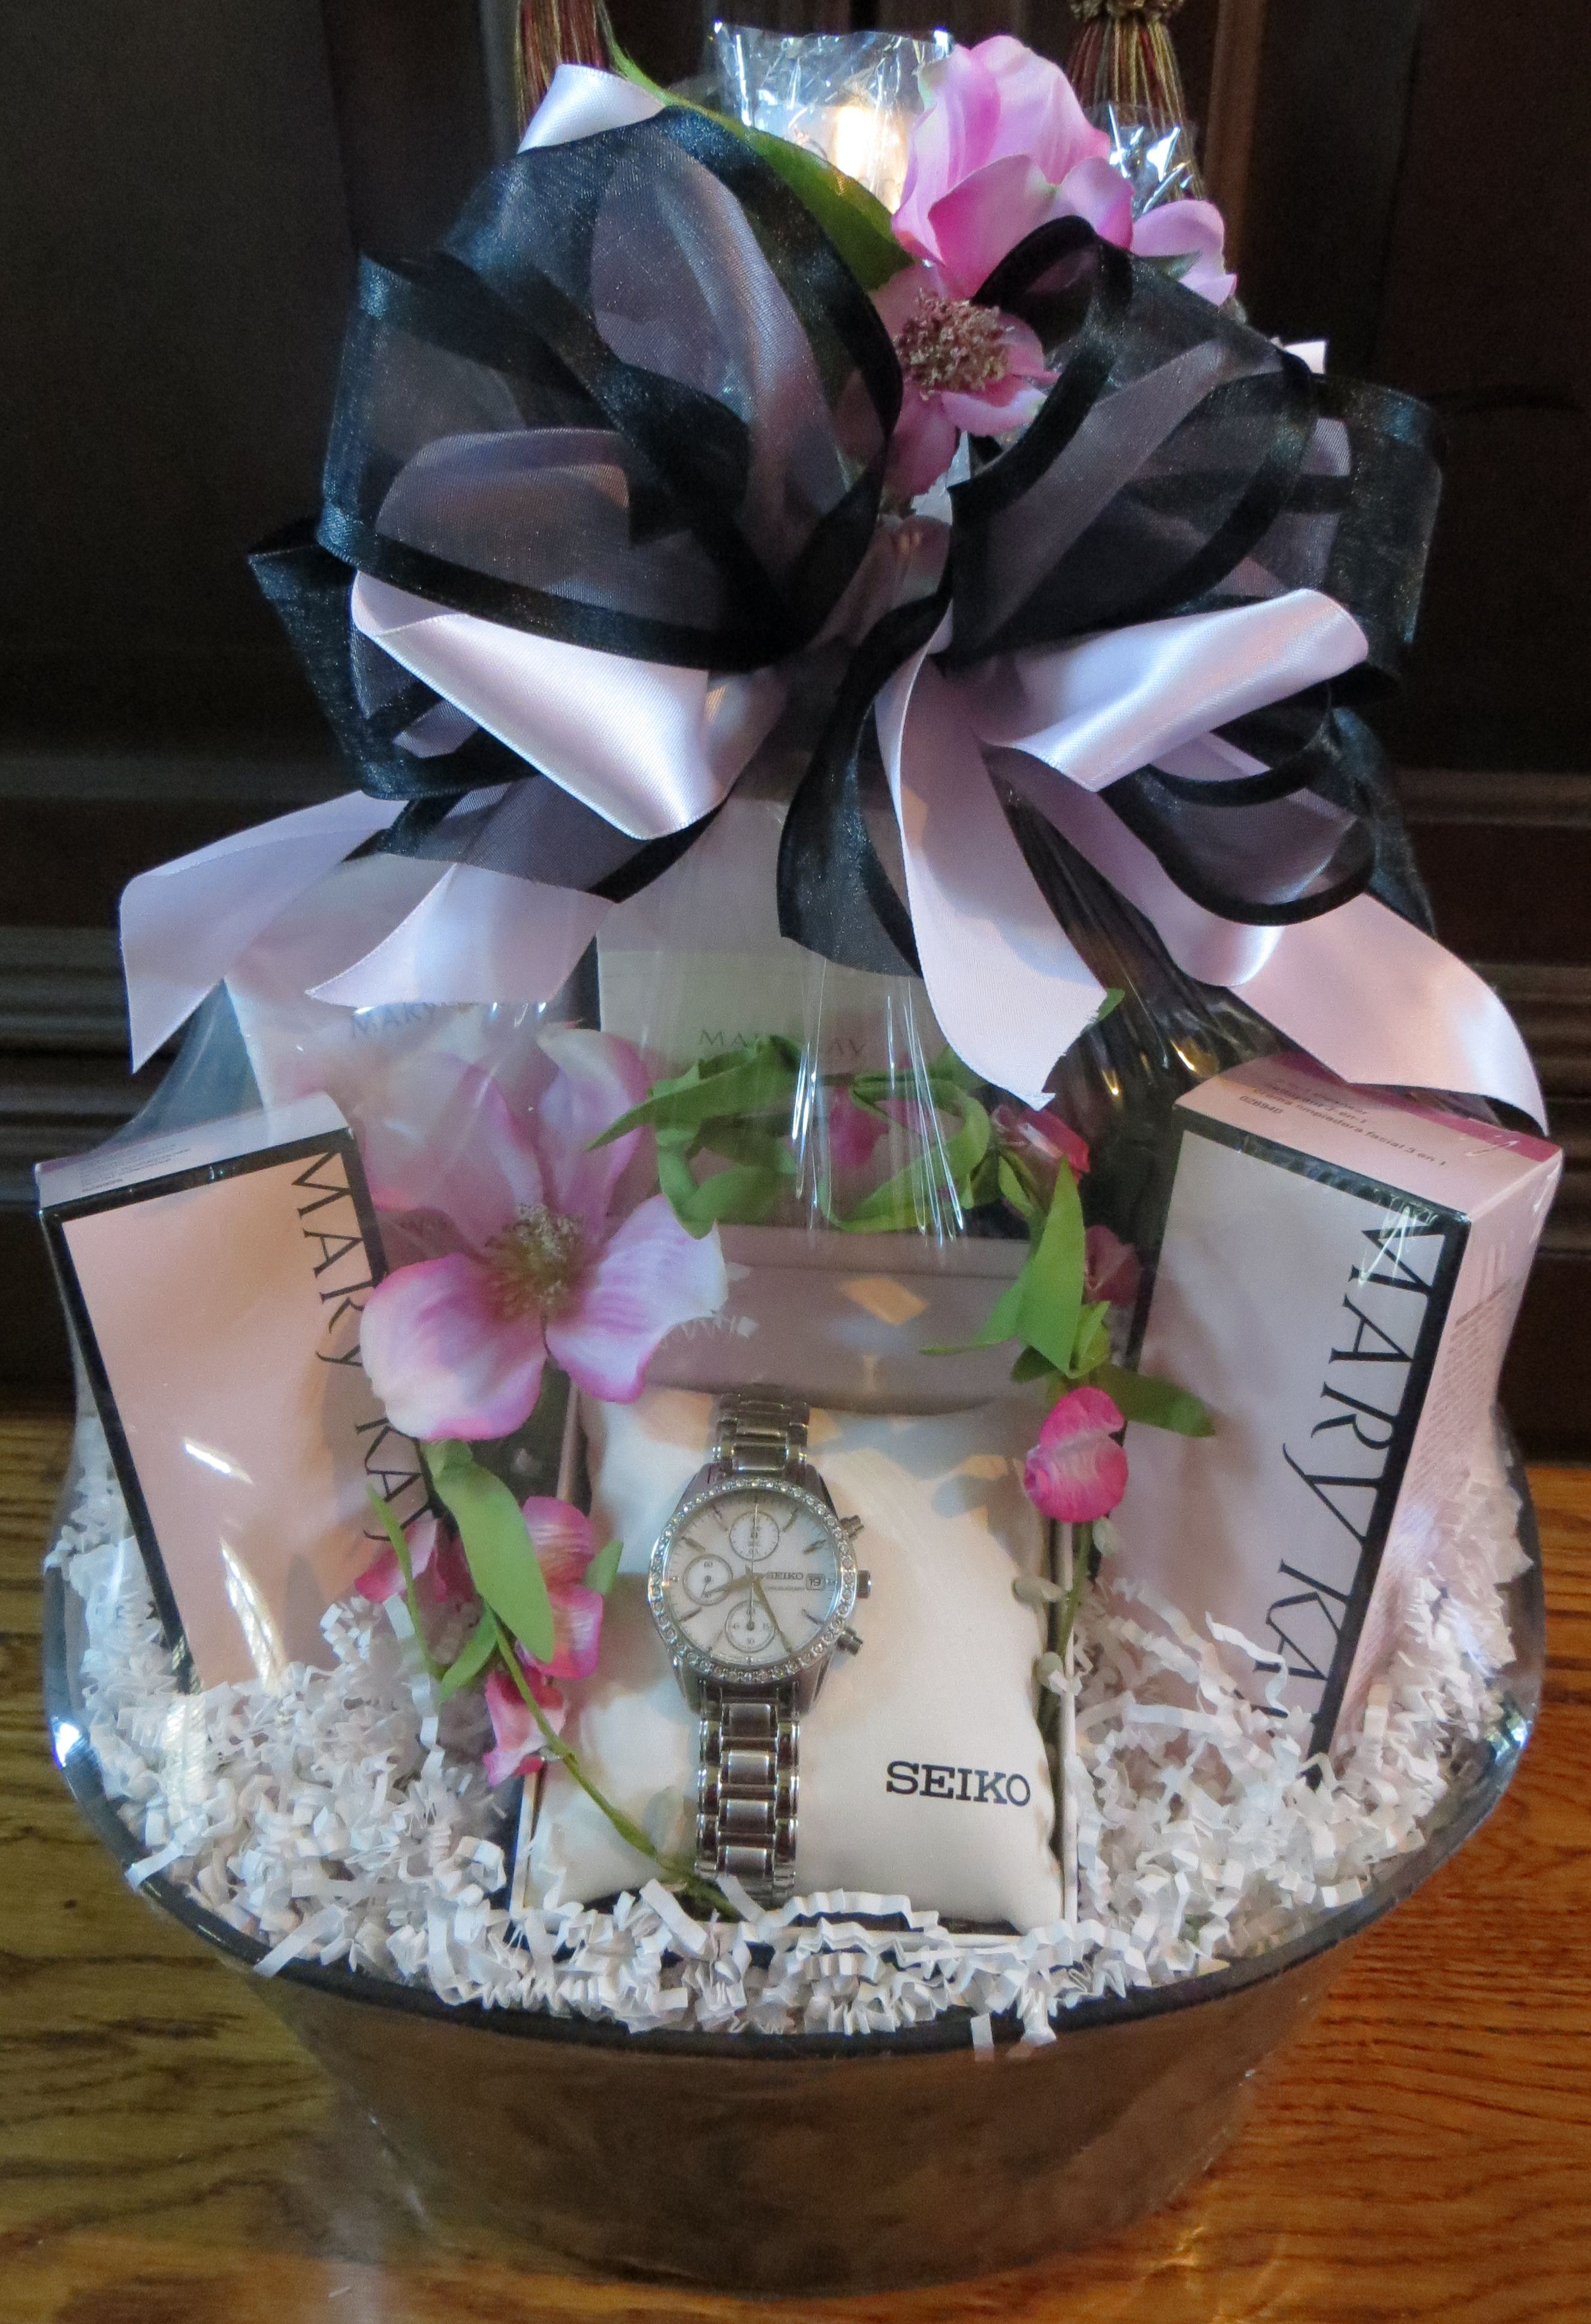 The Timewise Gift Basket, features Mary Kay products, and